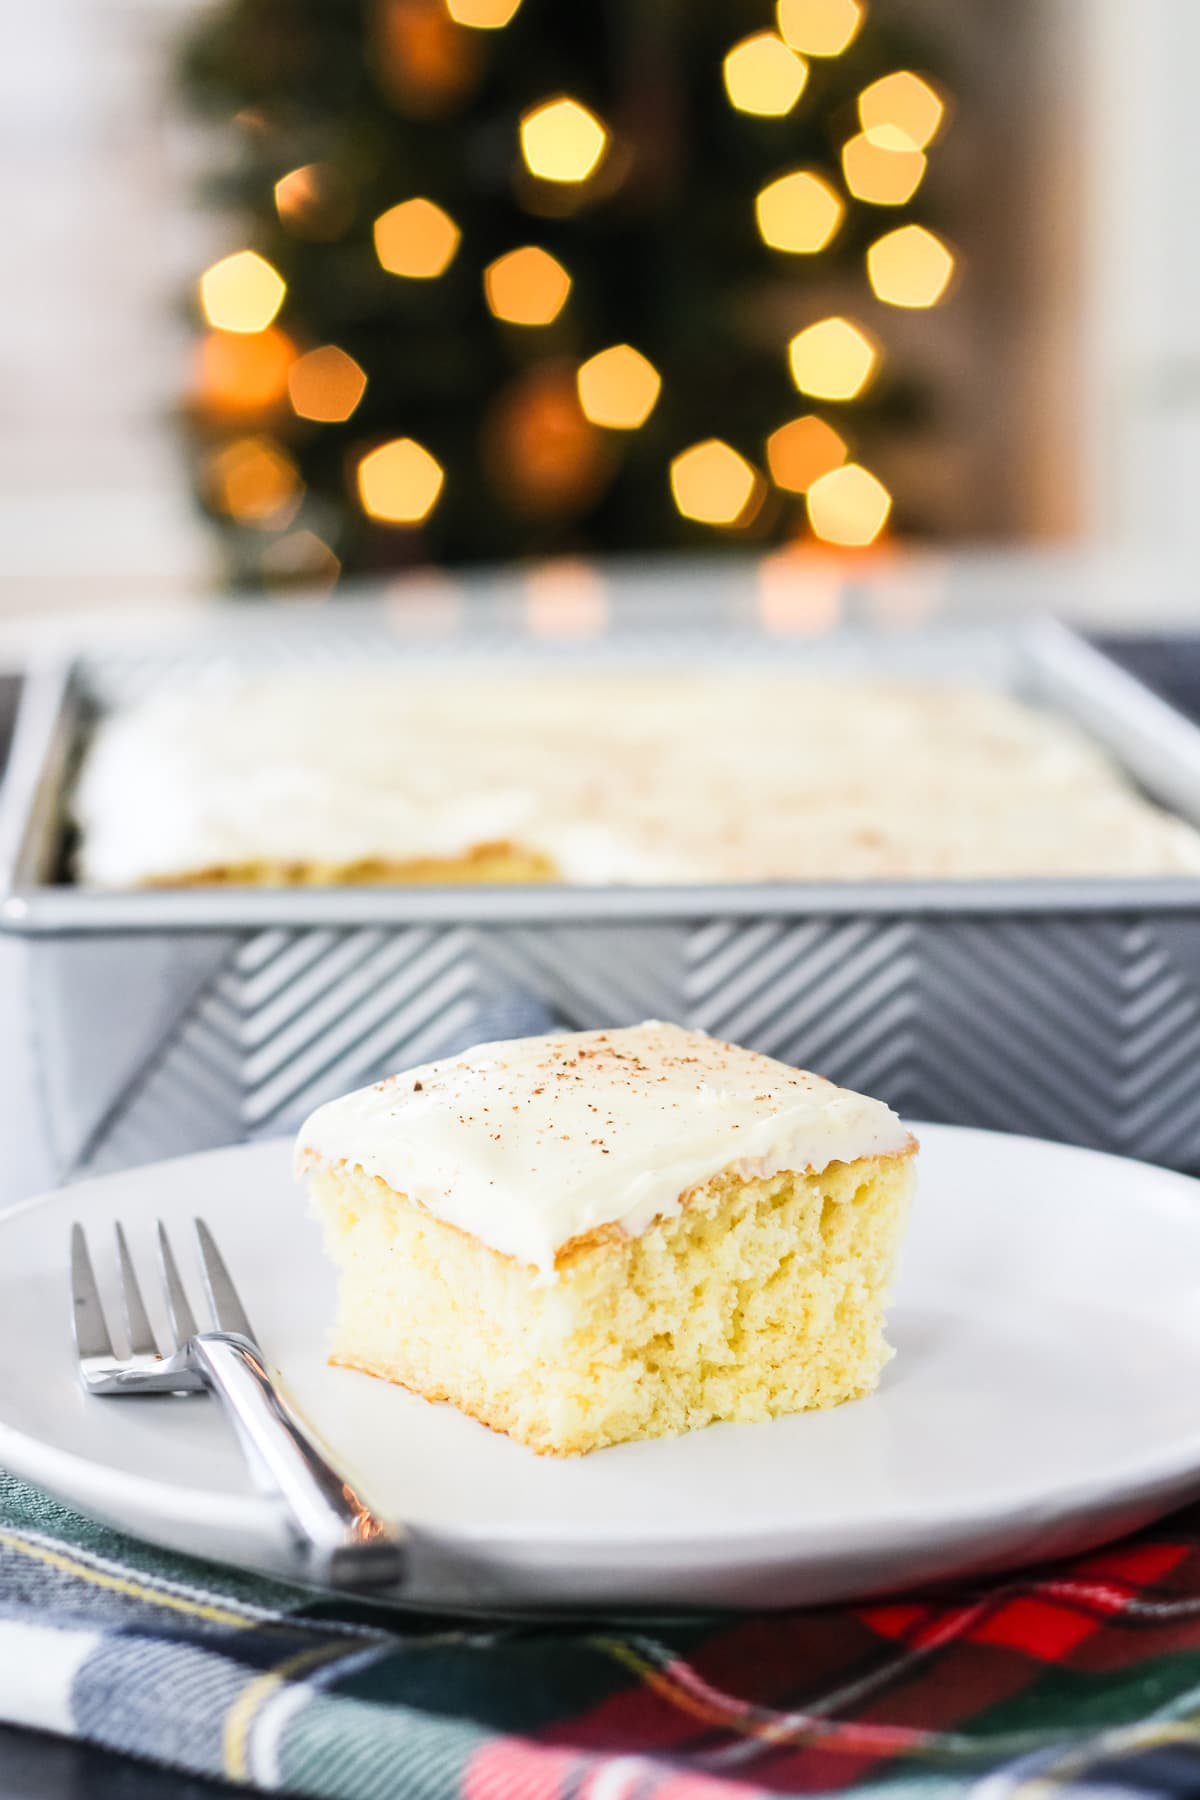 a square of frosted eggnog cake on a plate with a fork. in the background is the pan of eggnog cake with a piece cut out of it. in the far background is Bokeh